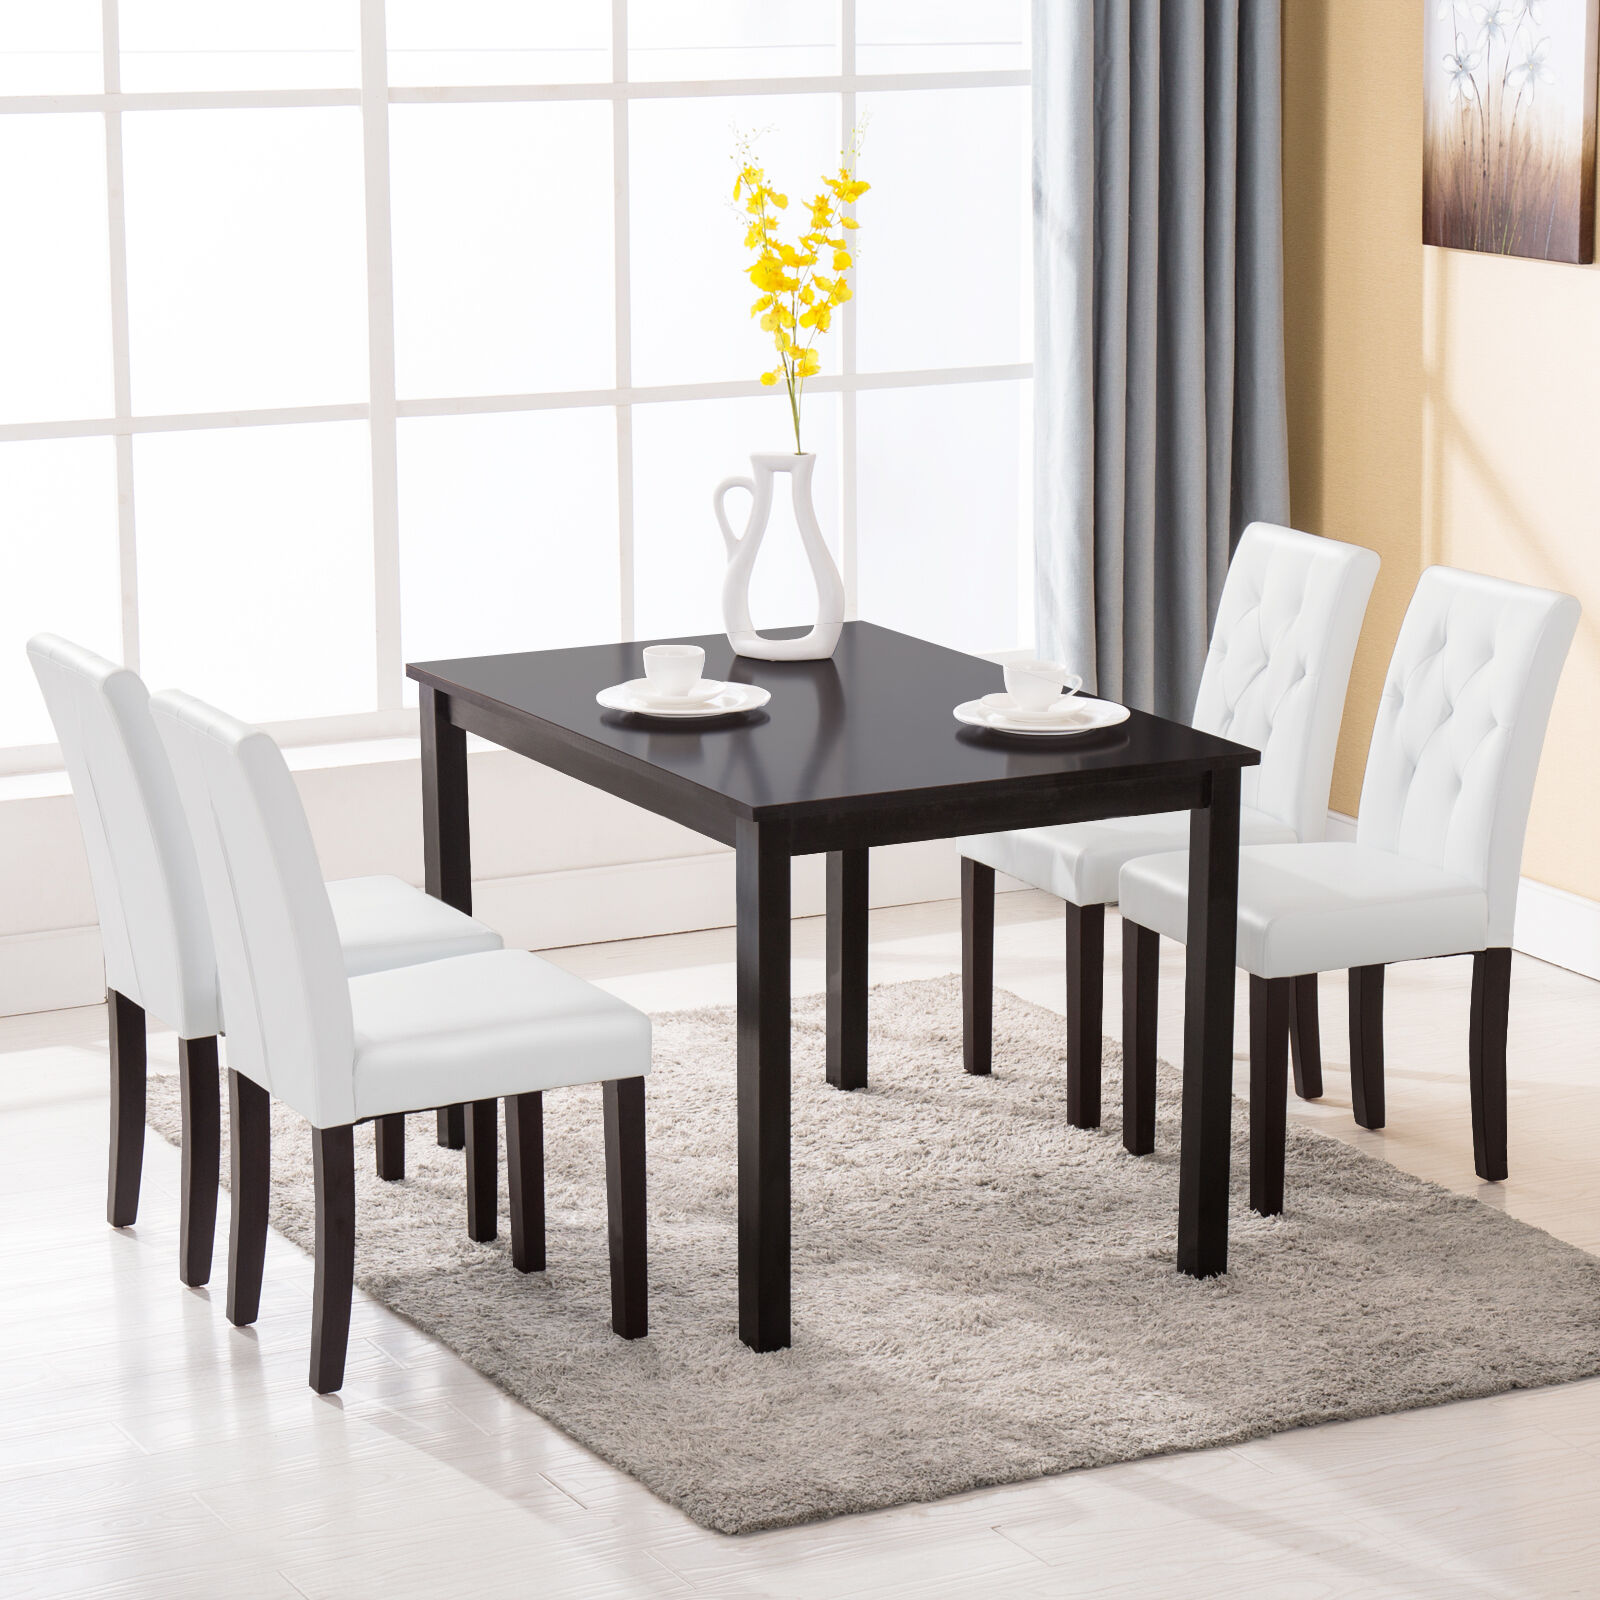 Set Of 4 Kitchen Chairs 5 Piece Dining Table Set 4 Chairs Room Kitchen Dinette